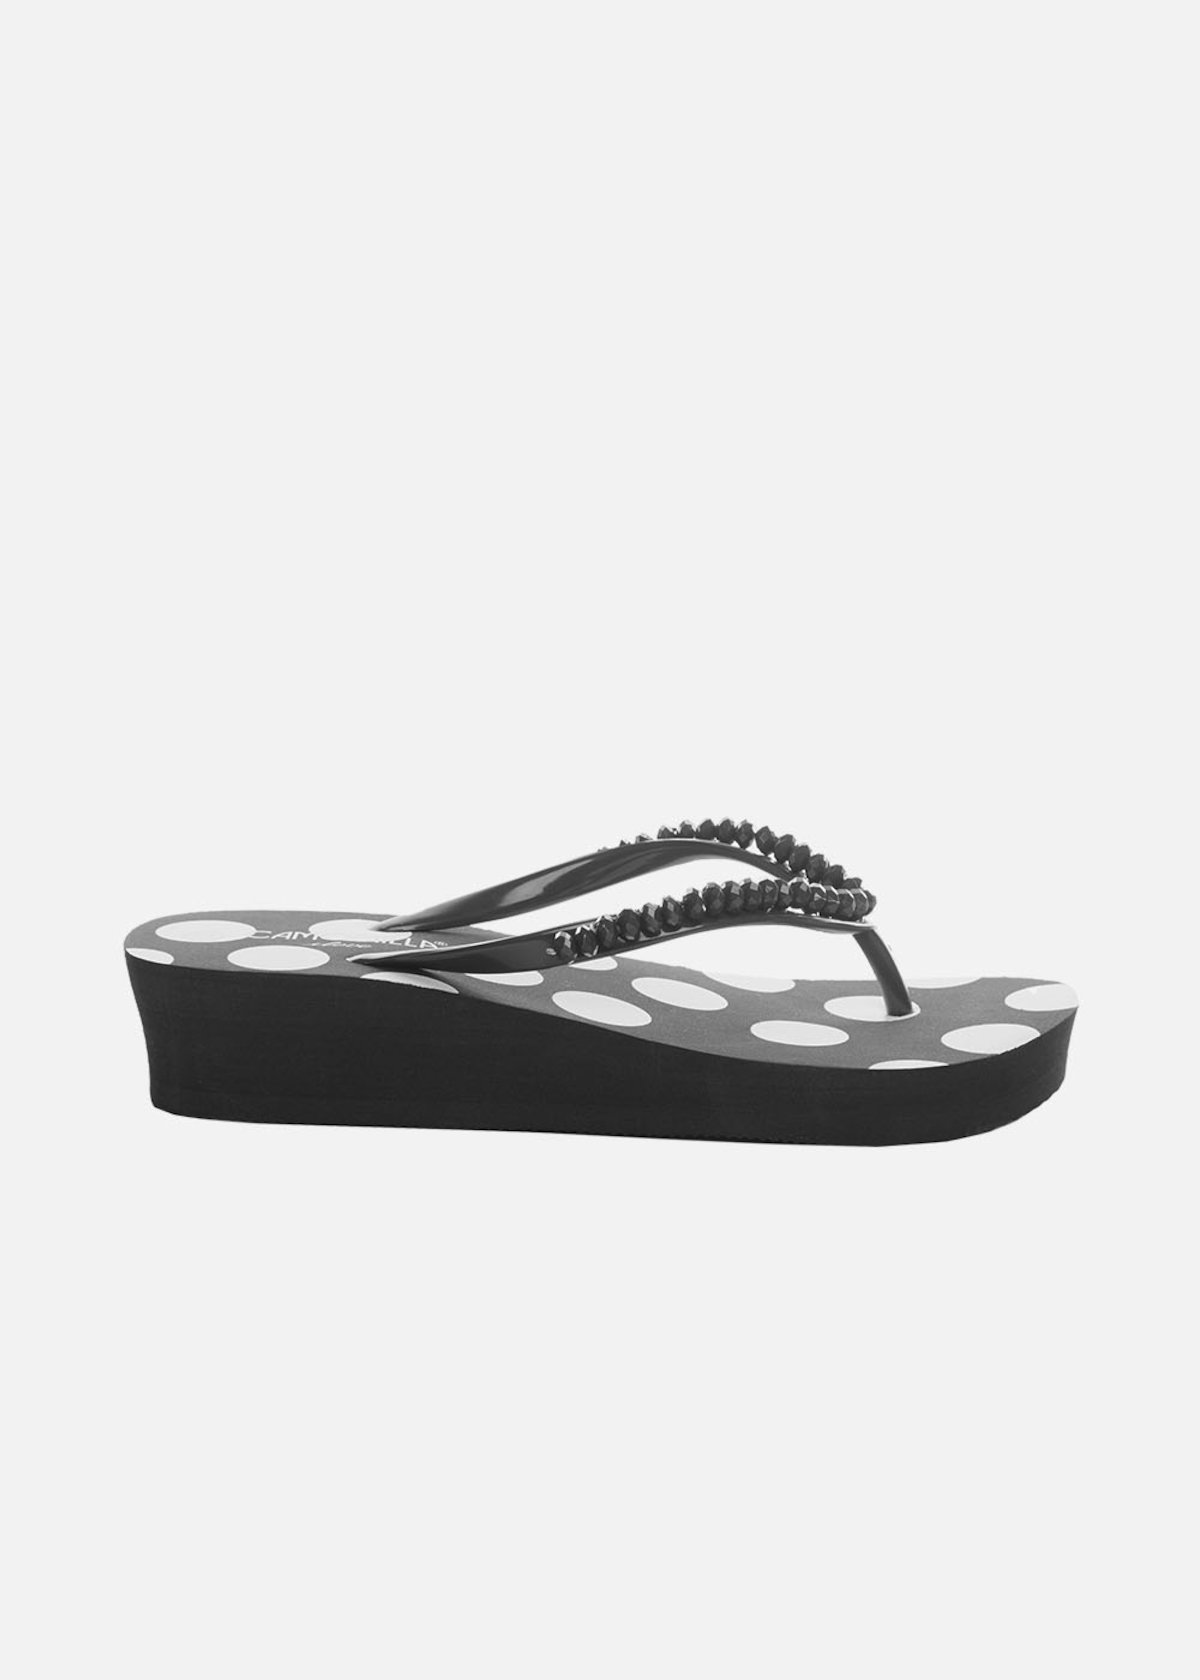 Calluna flip flops with stones detail - Black / White